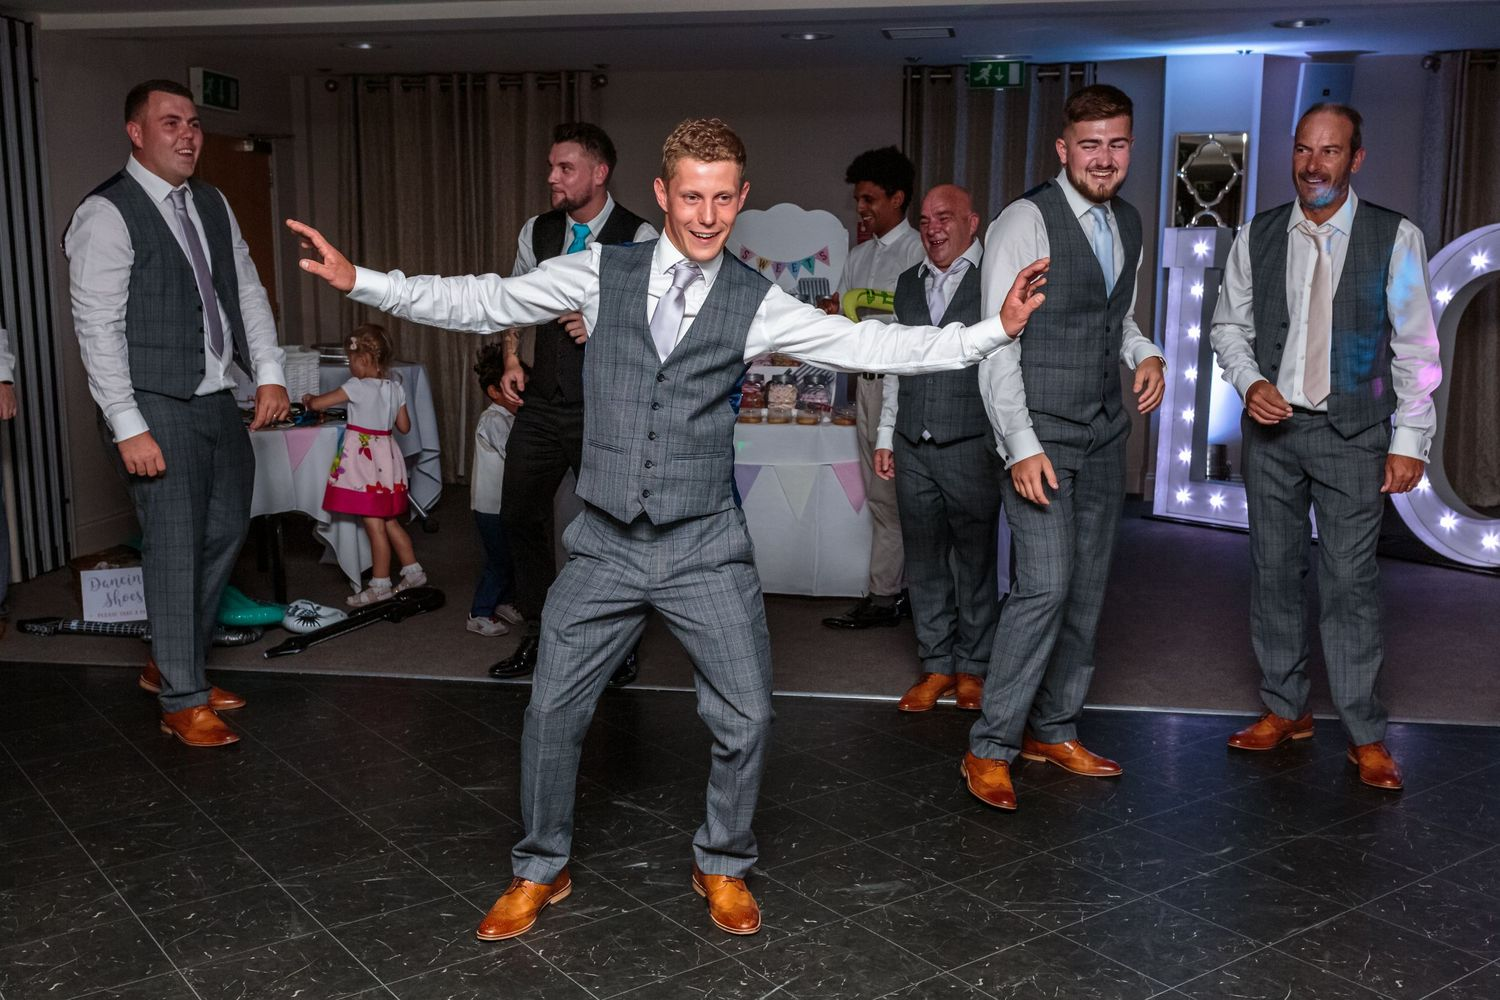 best man up for his dance solo arms outstretched as the rest of the groomsmen  watch on